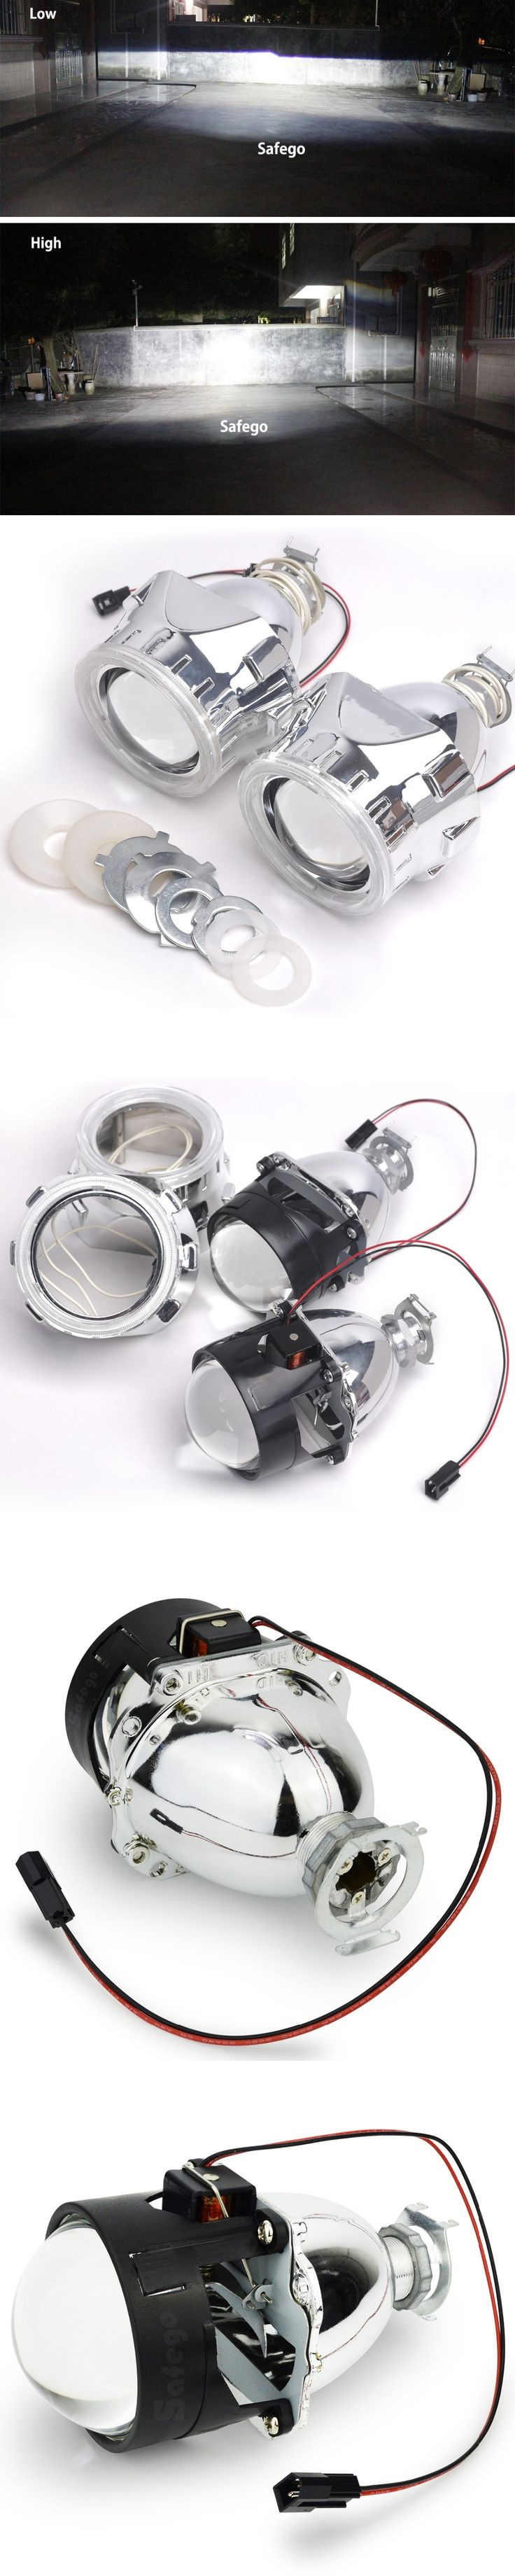 2.5 inch bixenon projector lens mask shroud with double angel eyes for car HID Headlight headlamp Projector Lens  for H1 H7 H4